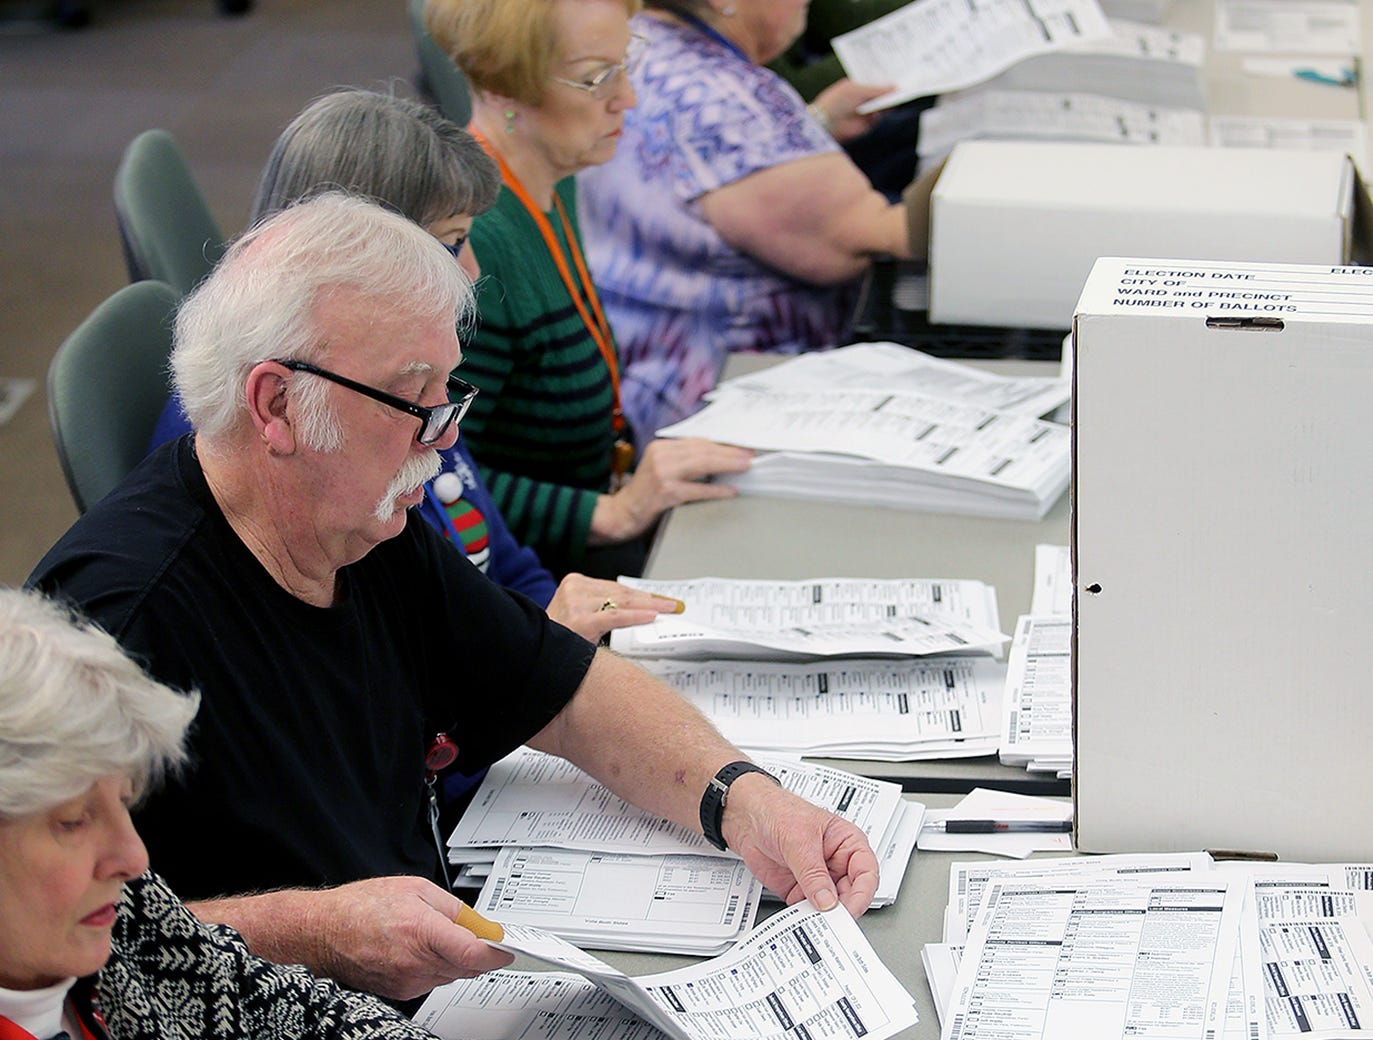 A recount for the 26th LD Senate race is in progress Thursday, December, 6, 2018 at the Kitsap County Elections Department in Port Orchard. Results will be certified on Friday.